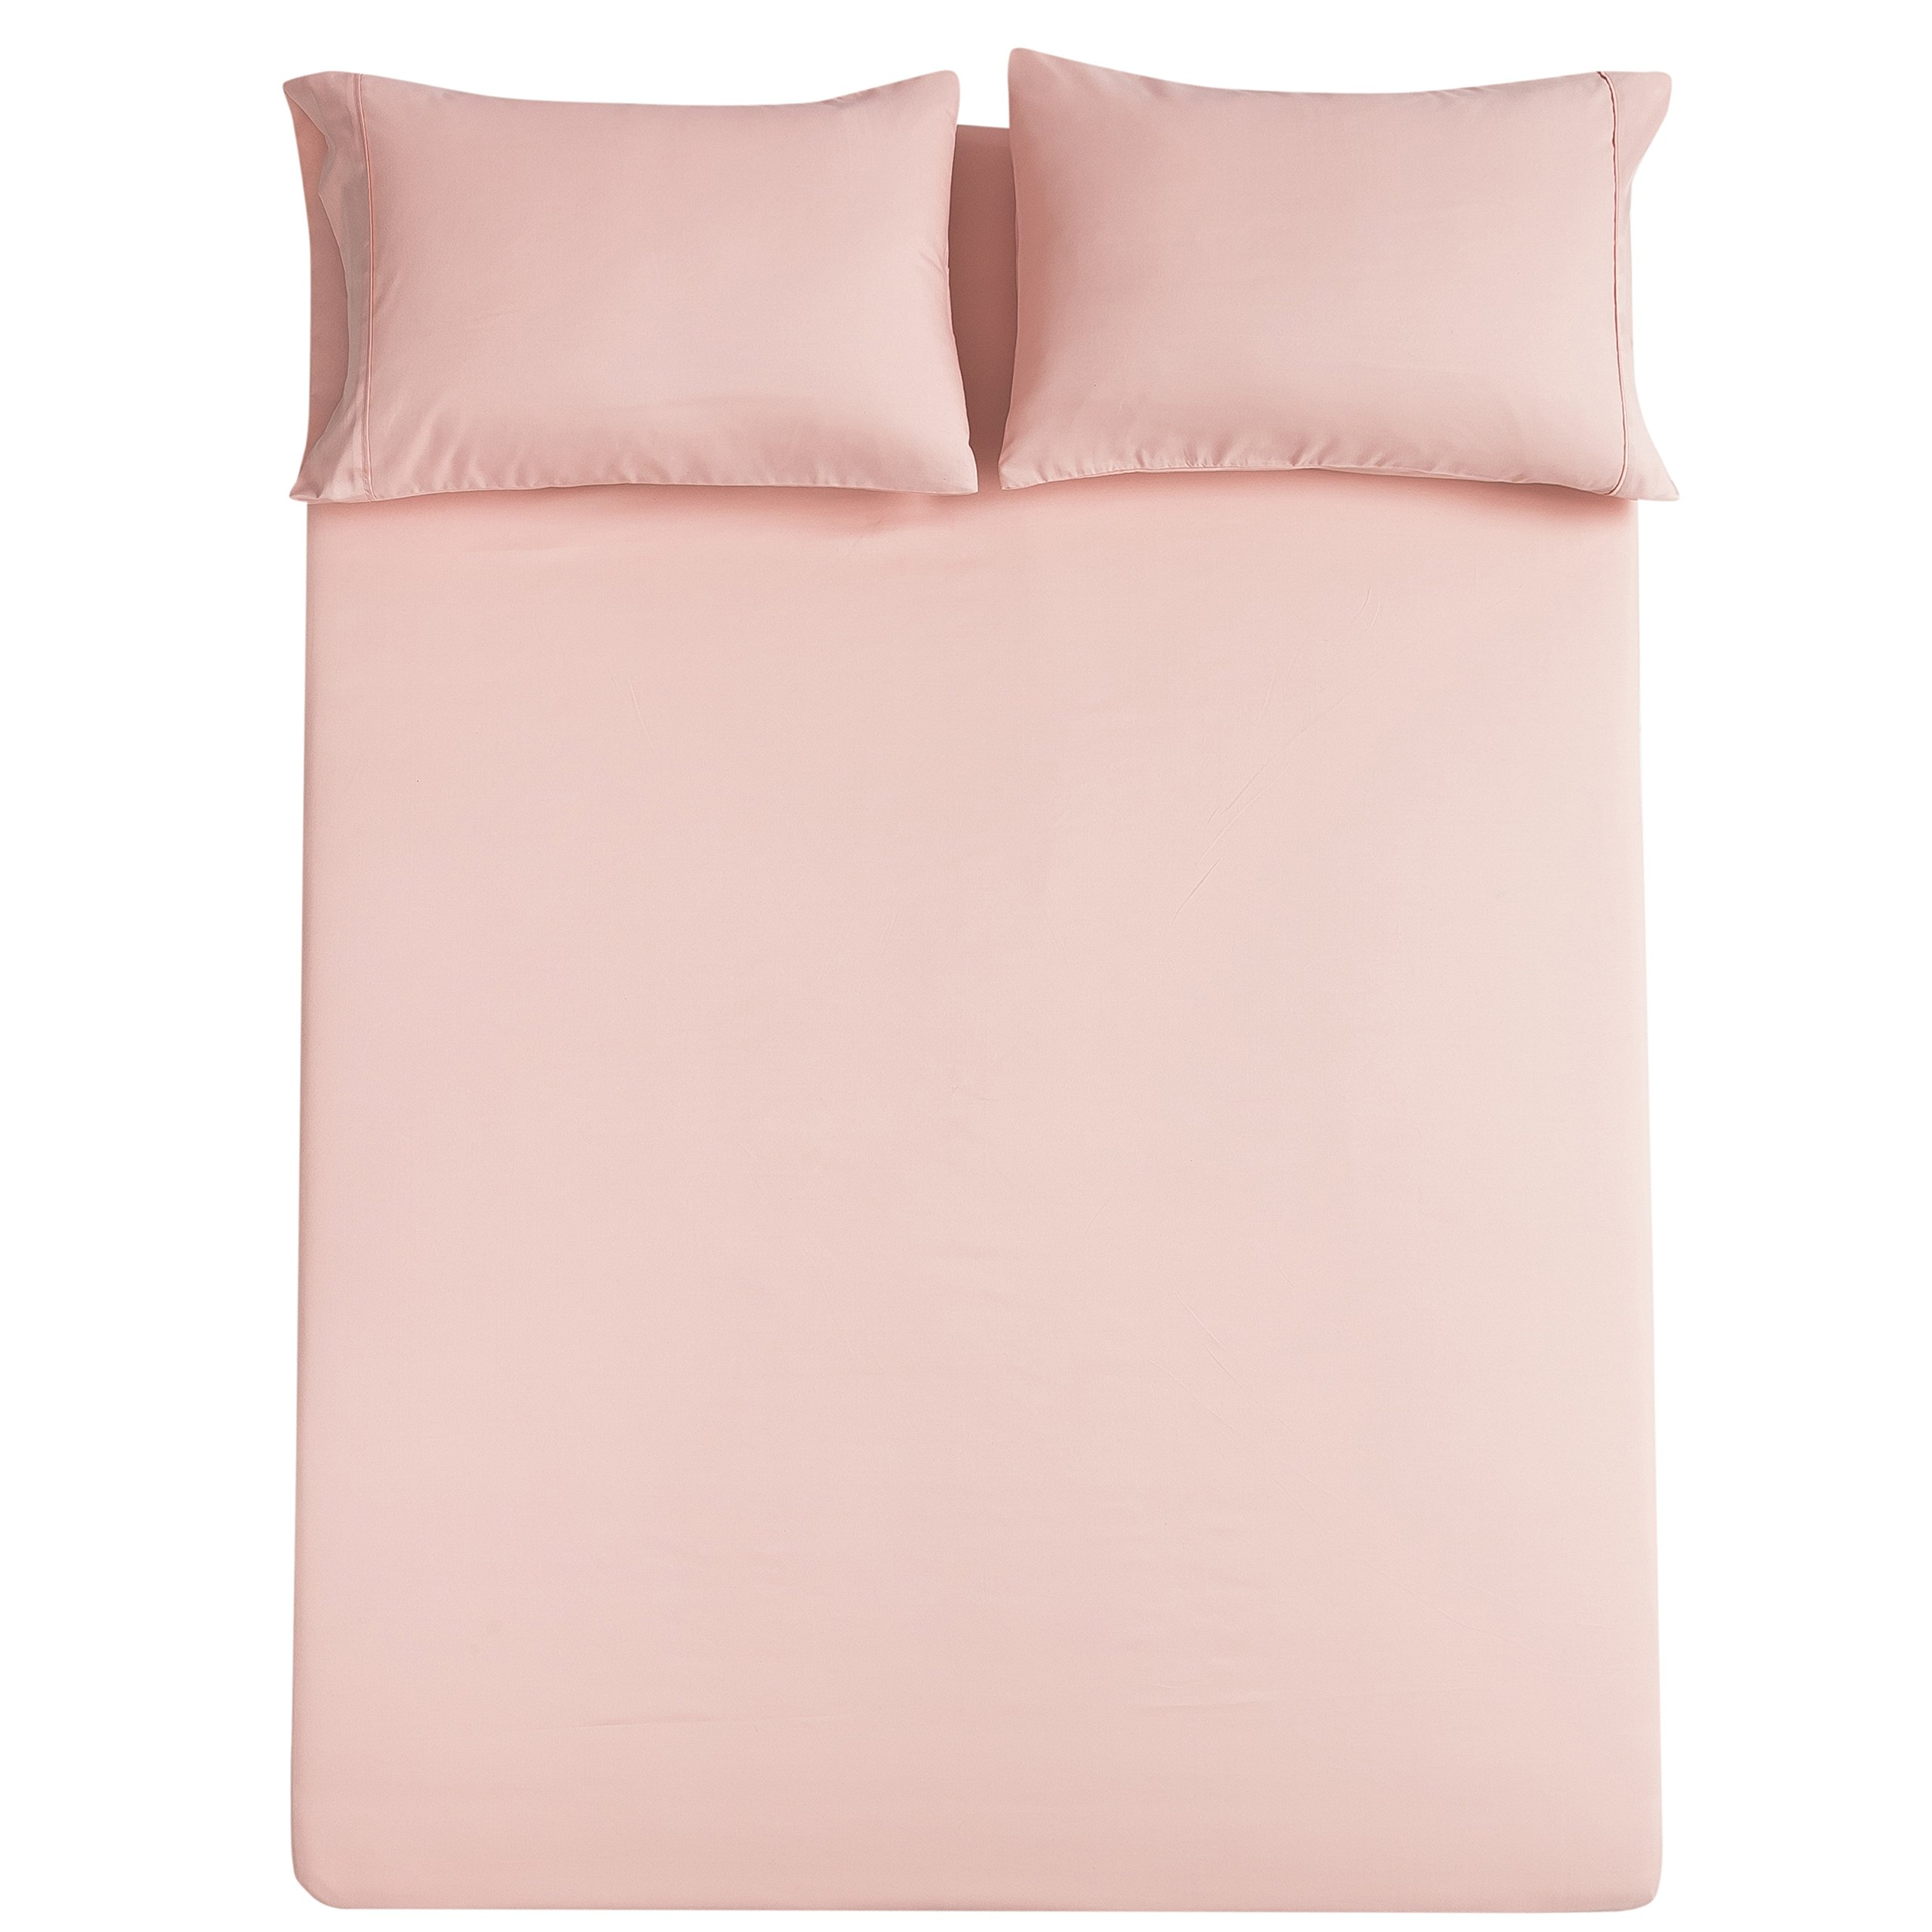 Bed Sheet Set Brushed Microfiber Soft Bedding Fade and Stain Resistant Hypoallergenic 4 Piece Queen, Blush Pink